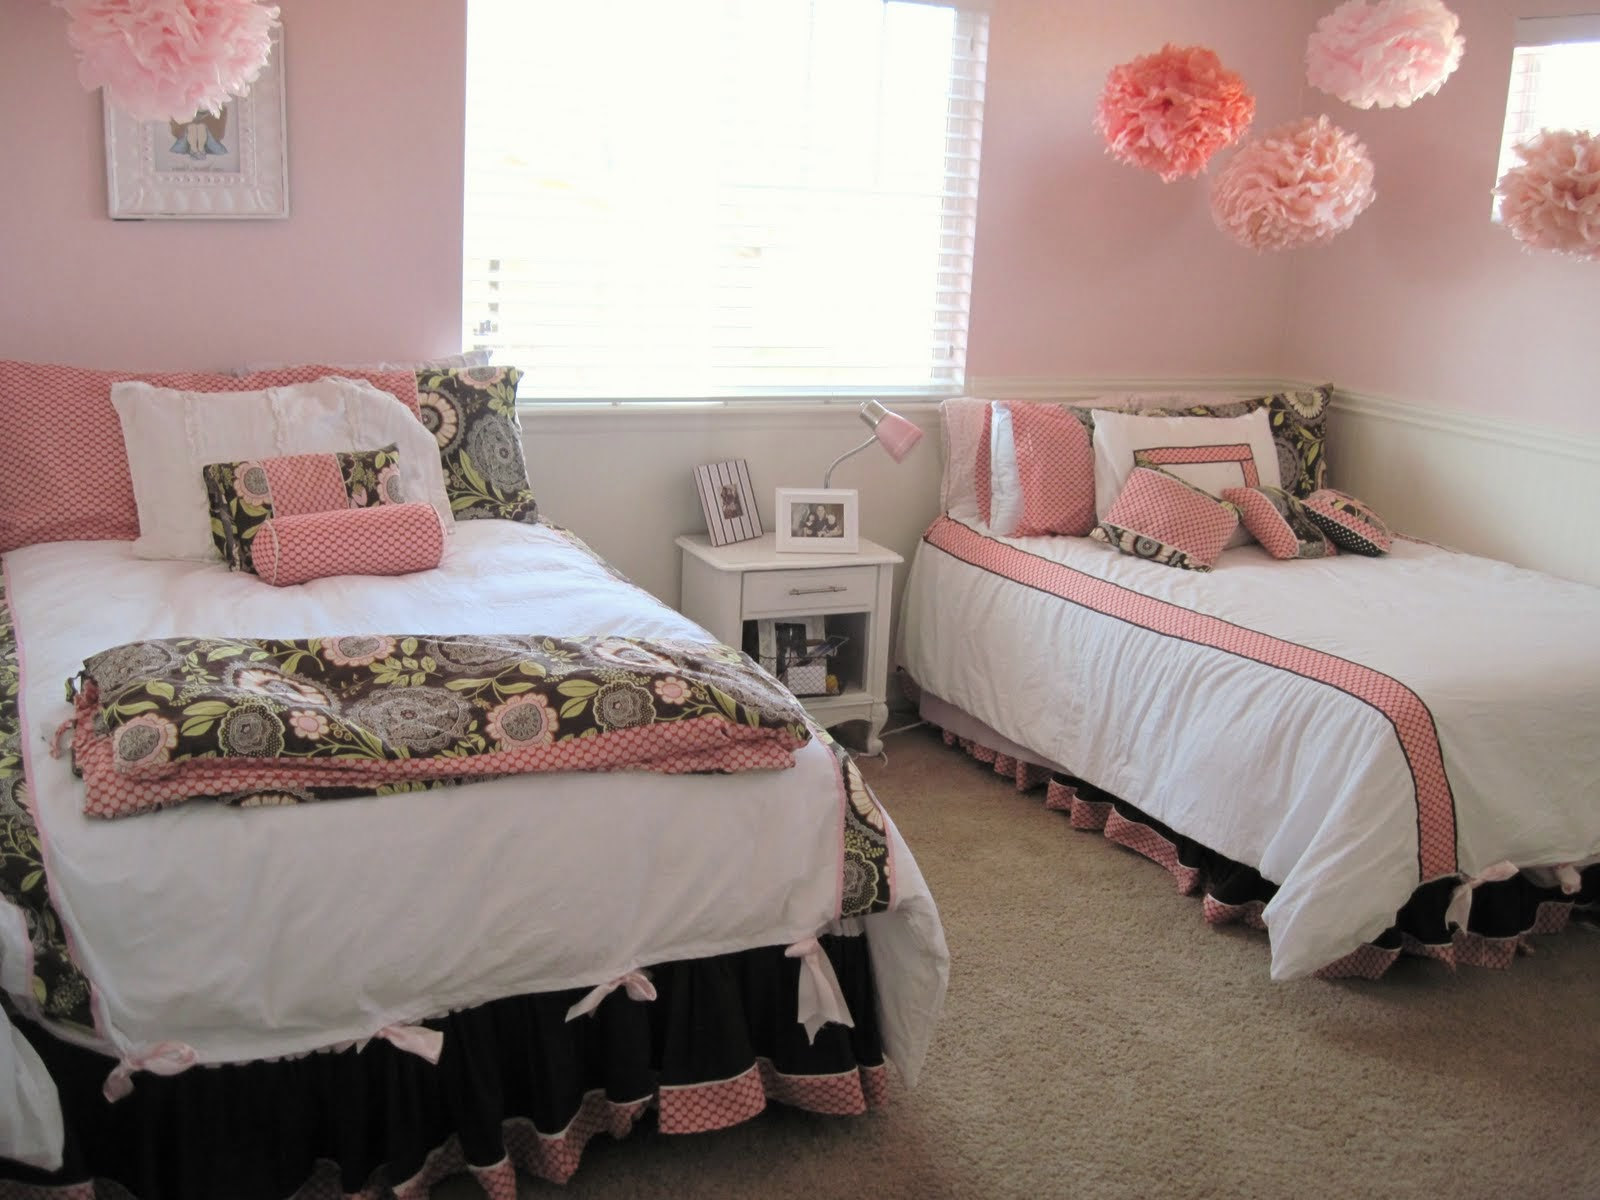 Pink Dorm Room Ideas For Girls Two Beds Part 89